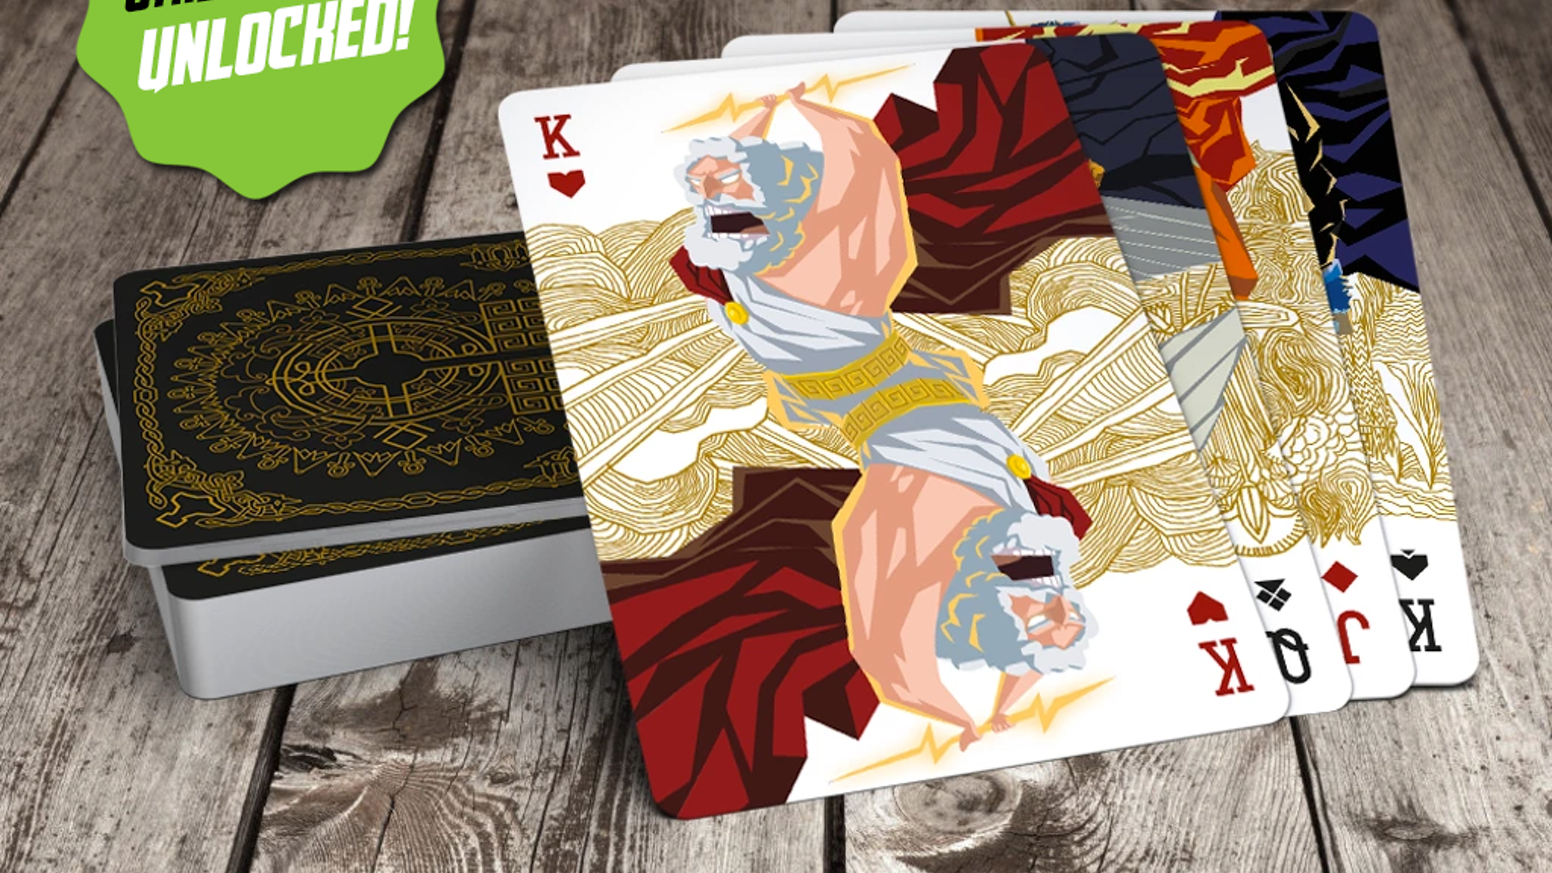 Epic playing cards with gods from the World of Mythology game. Cello-wrapped premium quality 310 gsm, linen card stock, special varnish!